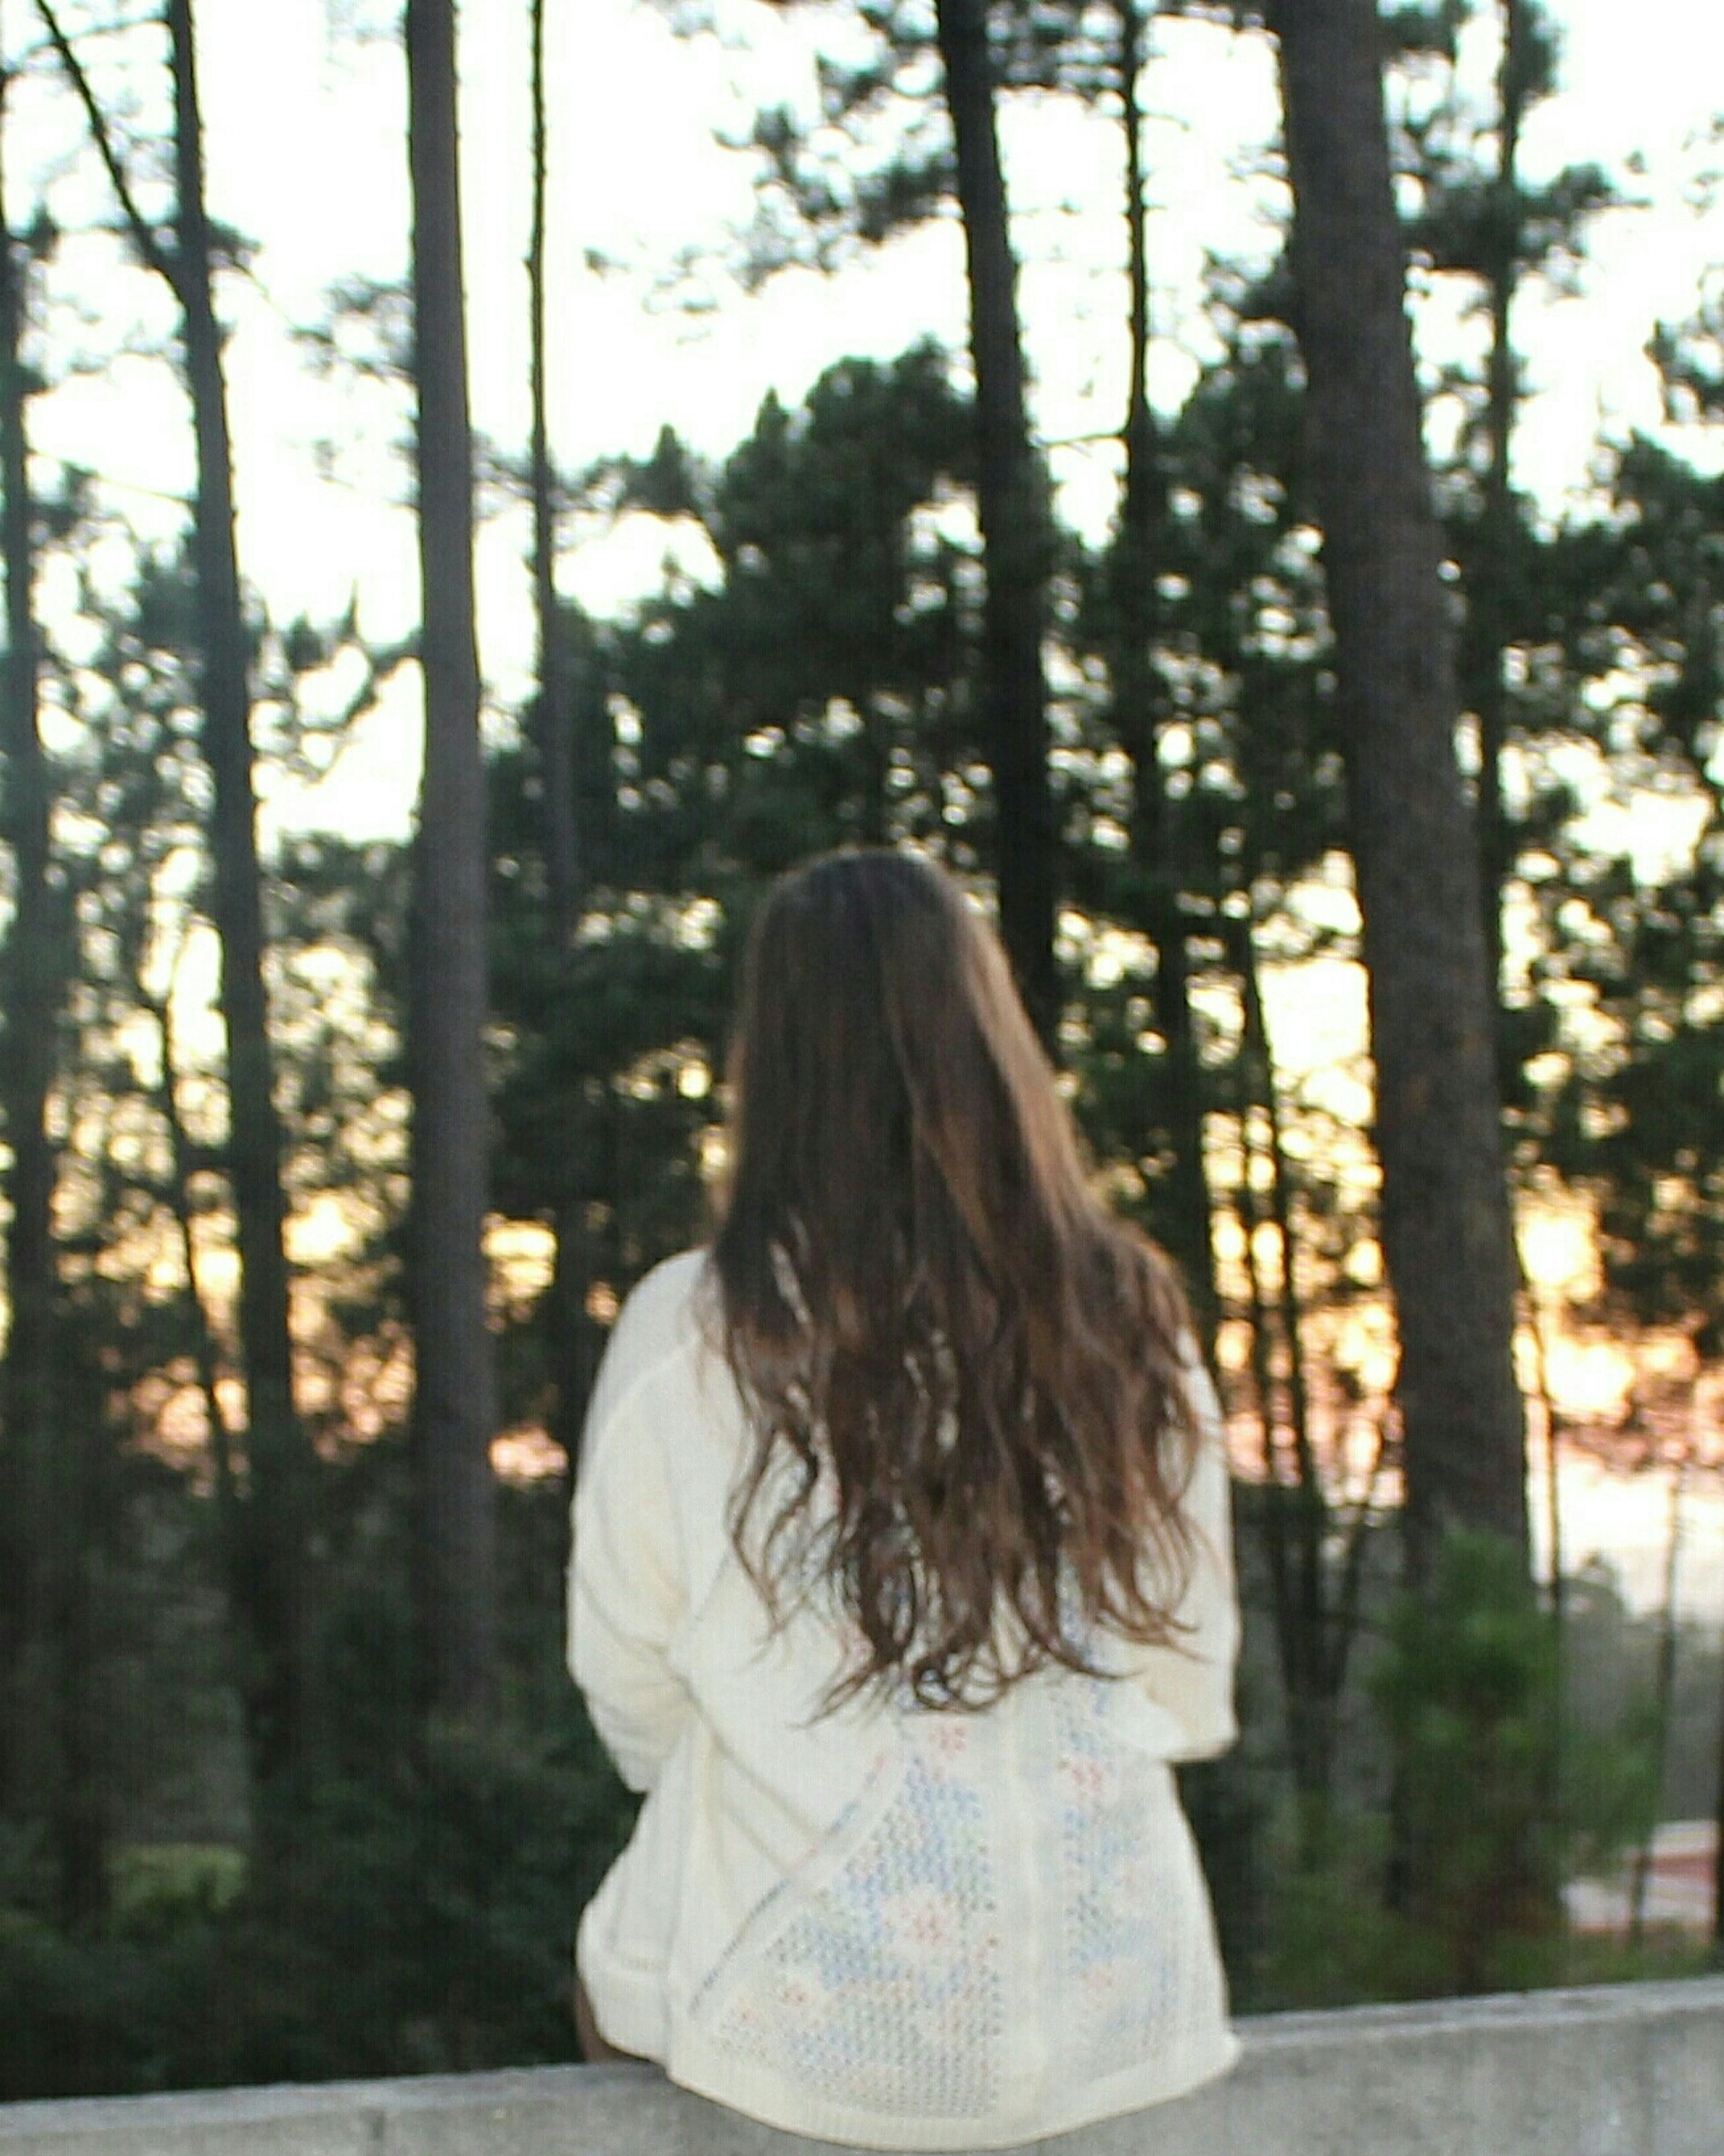 tree, rear view, lifestyles, focus on foreground, long hair, person, leisure activity, casual clothing, park - man made space, standing, young women, waist up, young adult, girls, flower, day, three quarter length, dress